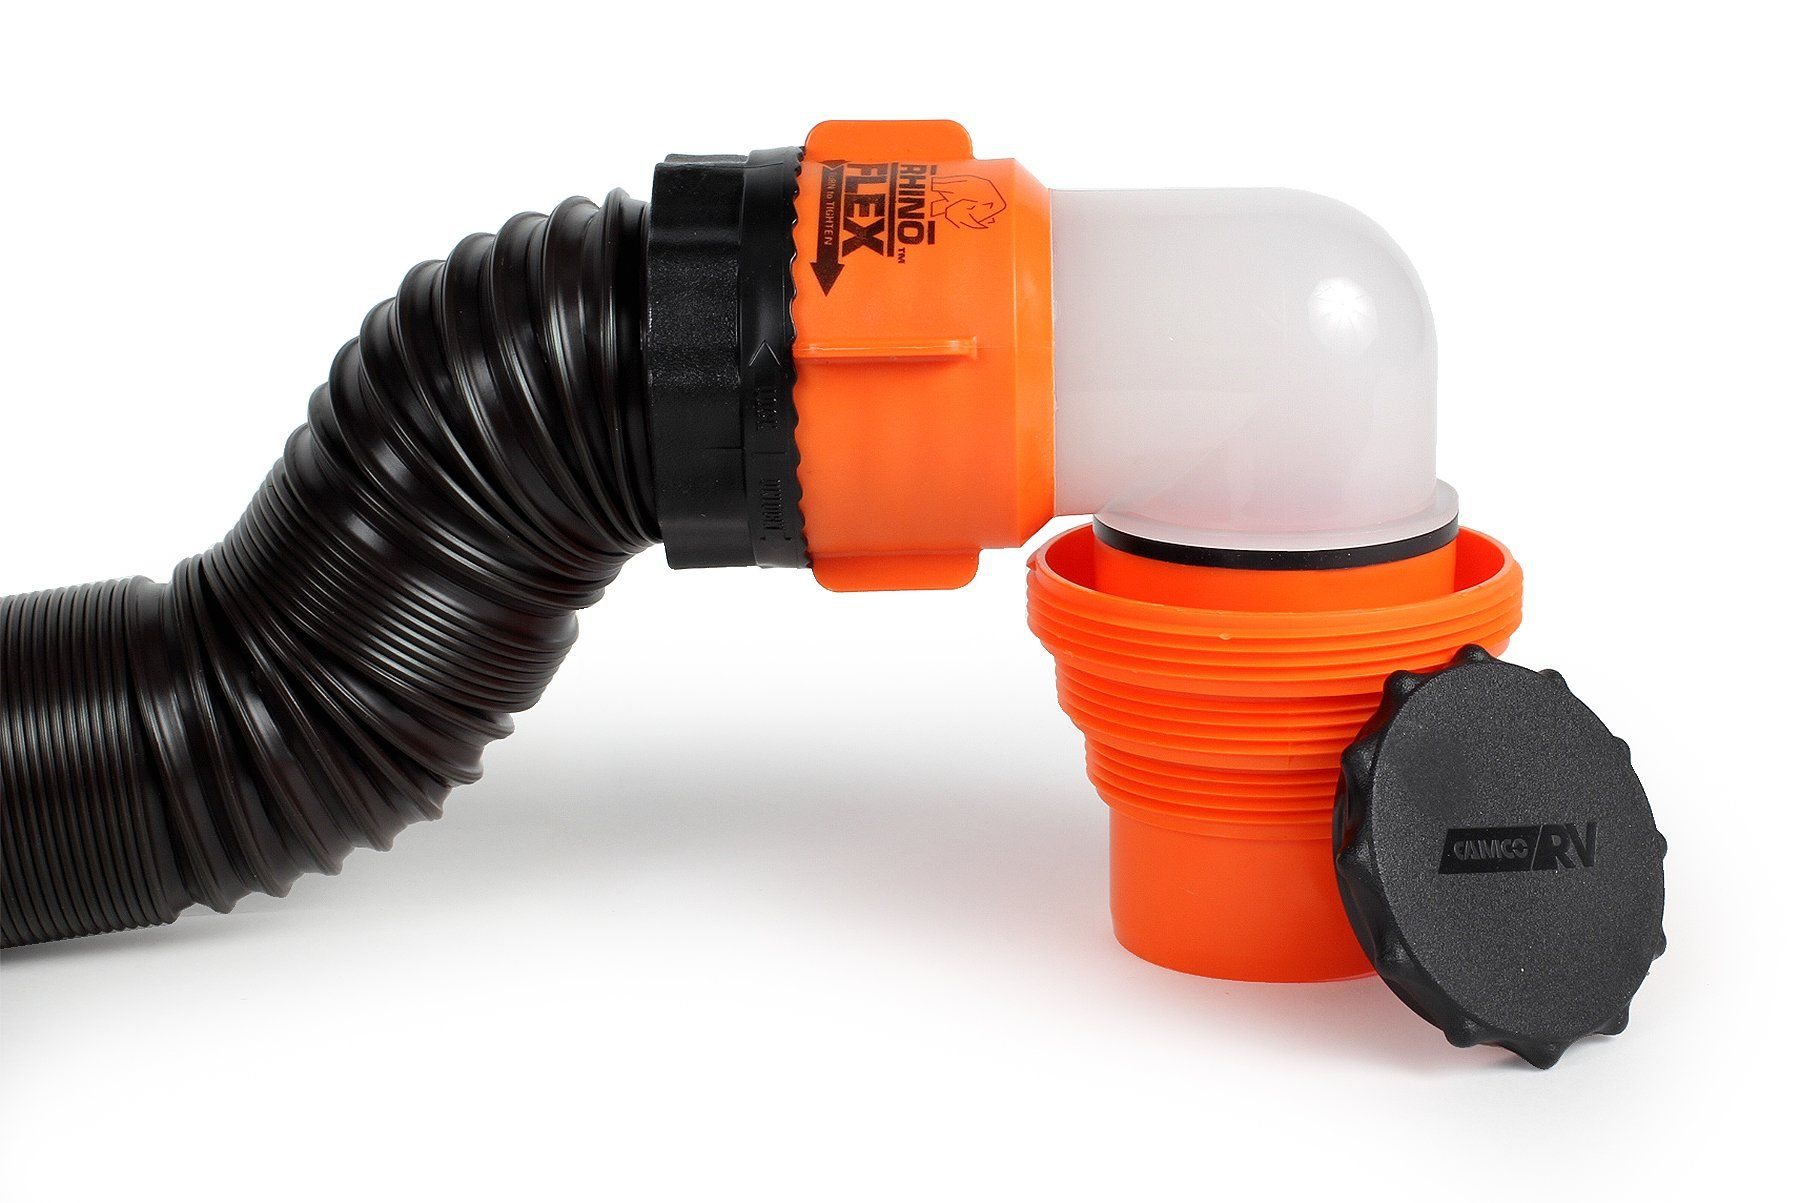 Camco Rhinoflex 20ft Rv Sewer Hose Kit Includes Swivel Fitting And Translucent Elbow With 4 In 1 Dump Station Fitting Storage Cap Camco Flex Hose Translucent